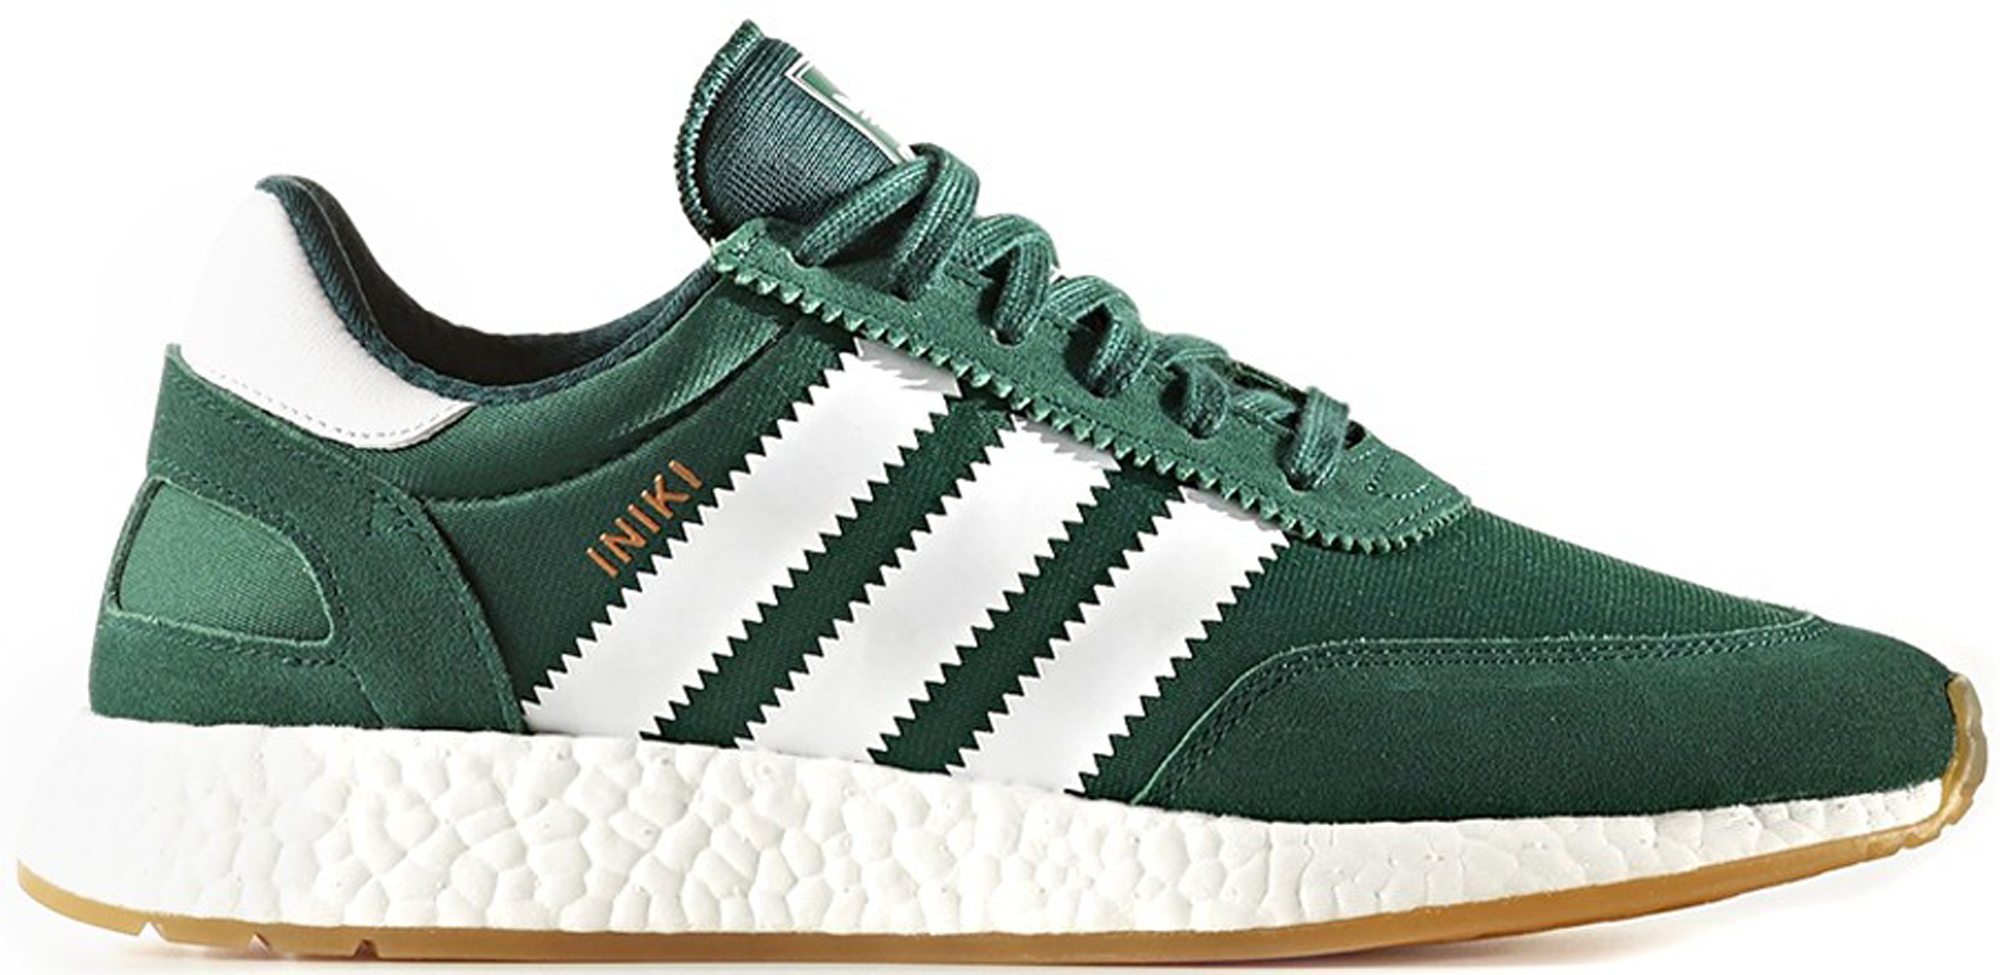 adidas Iniki Runner Green White Gum